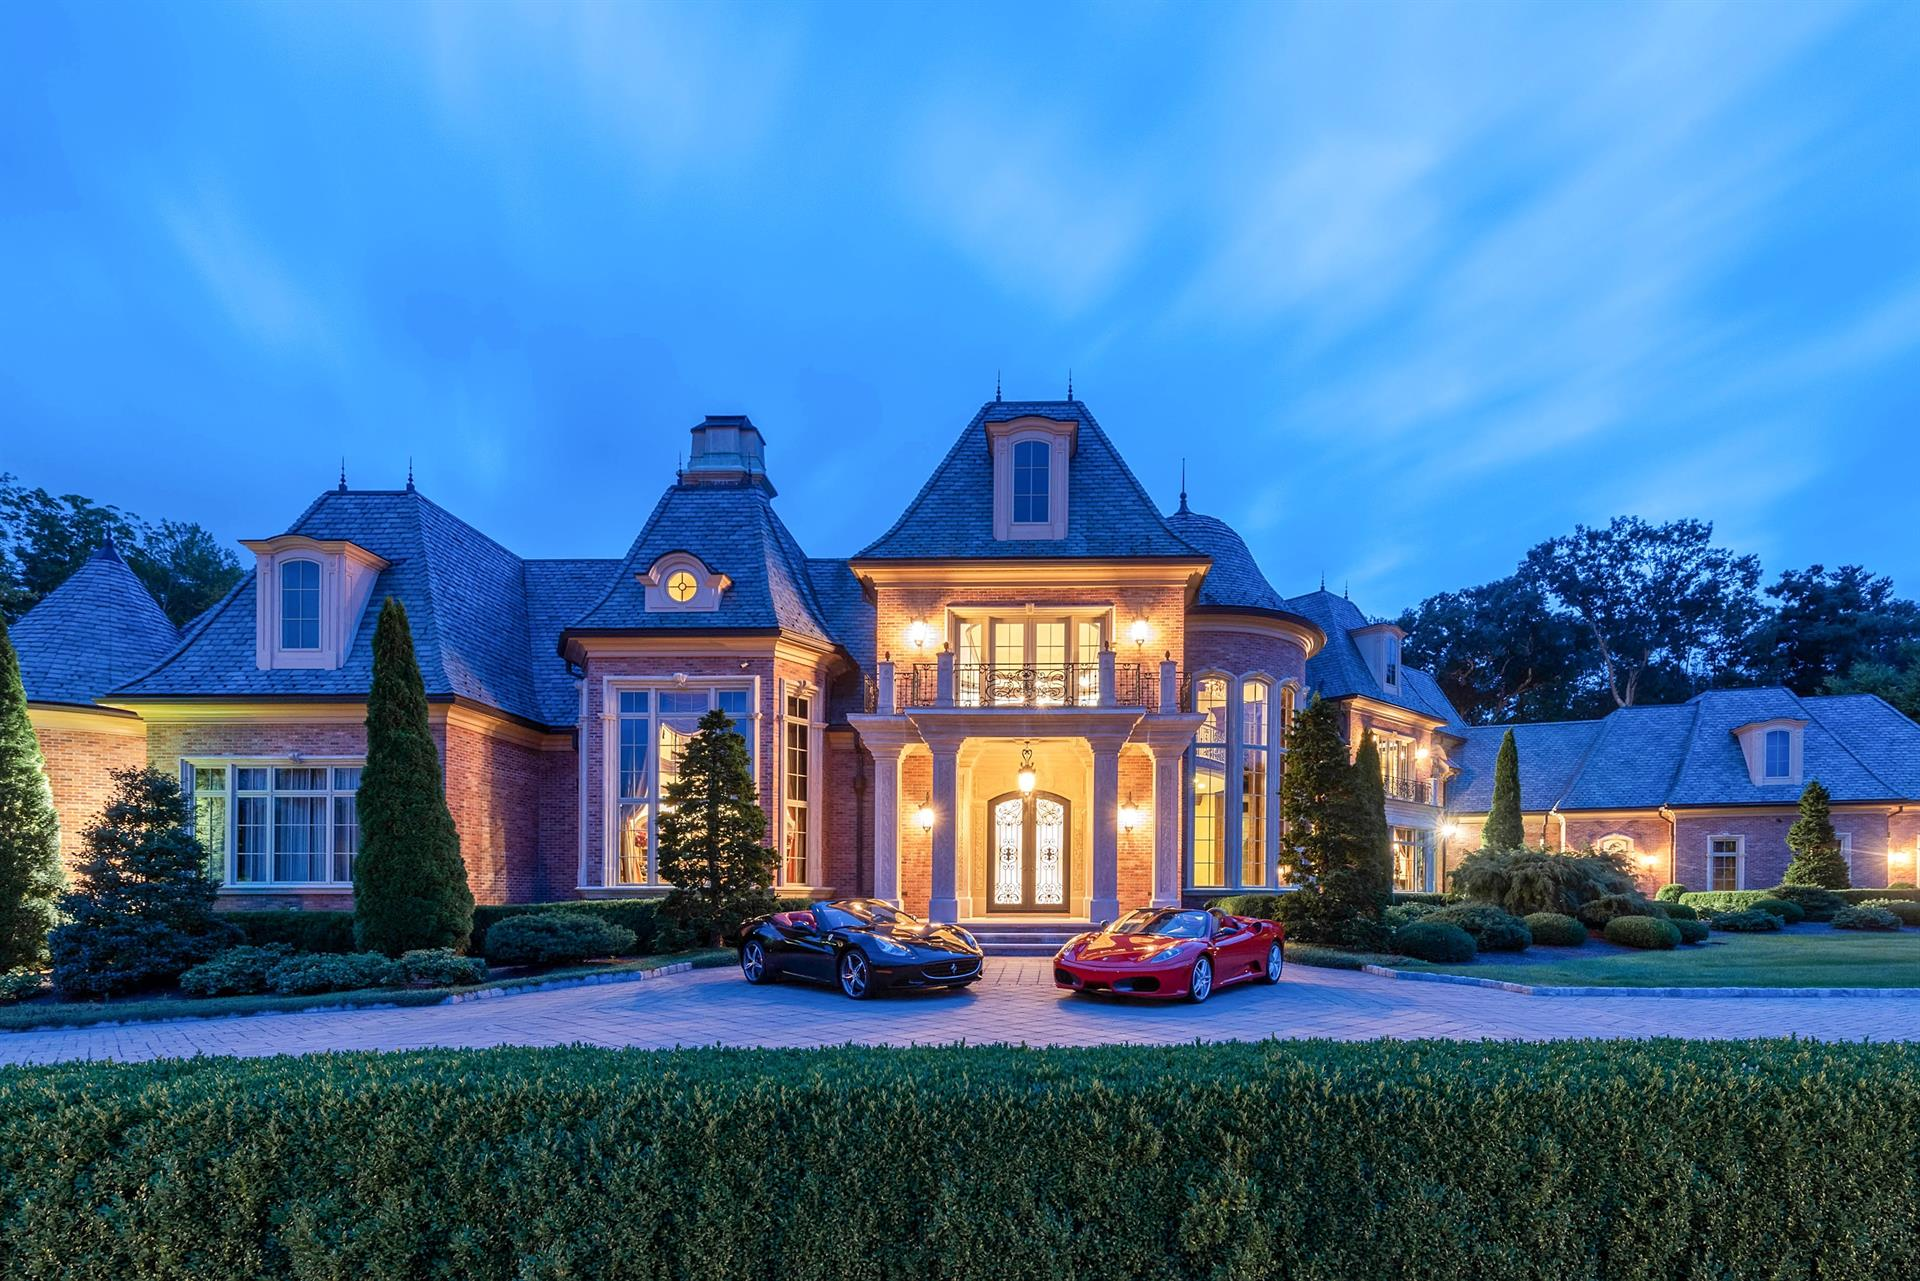 Single Family Home for Sale at Ramapo Mountain Estate, Mahwah, New Jersey Mahwah, New Jersey 07430 United States